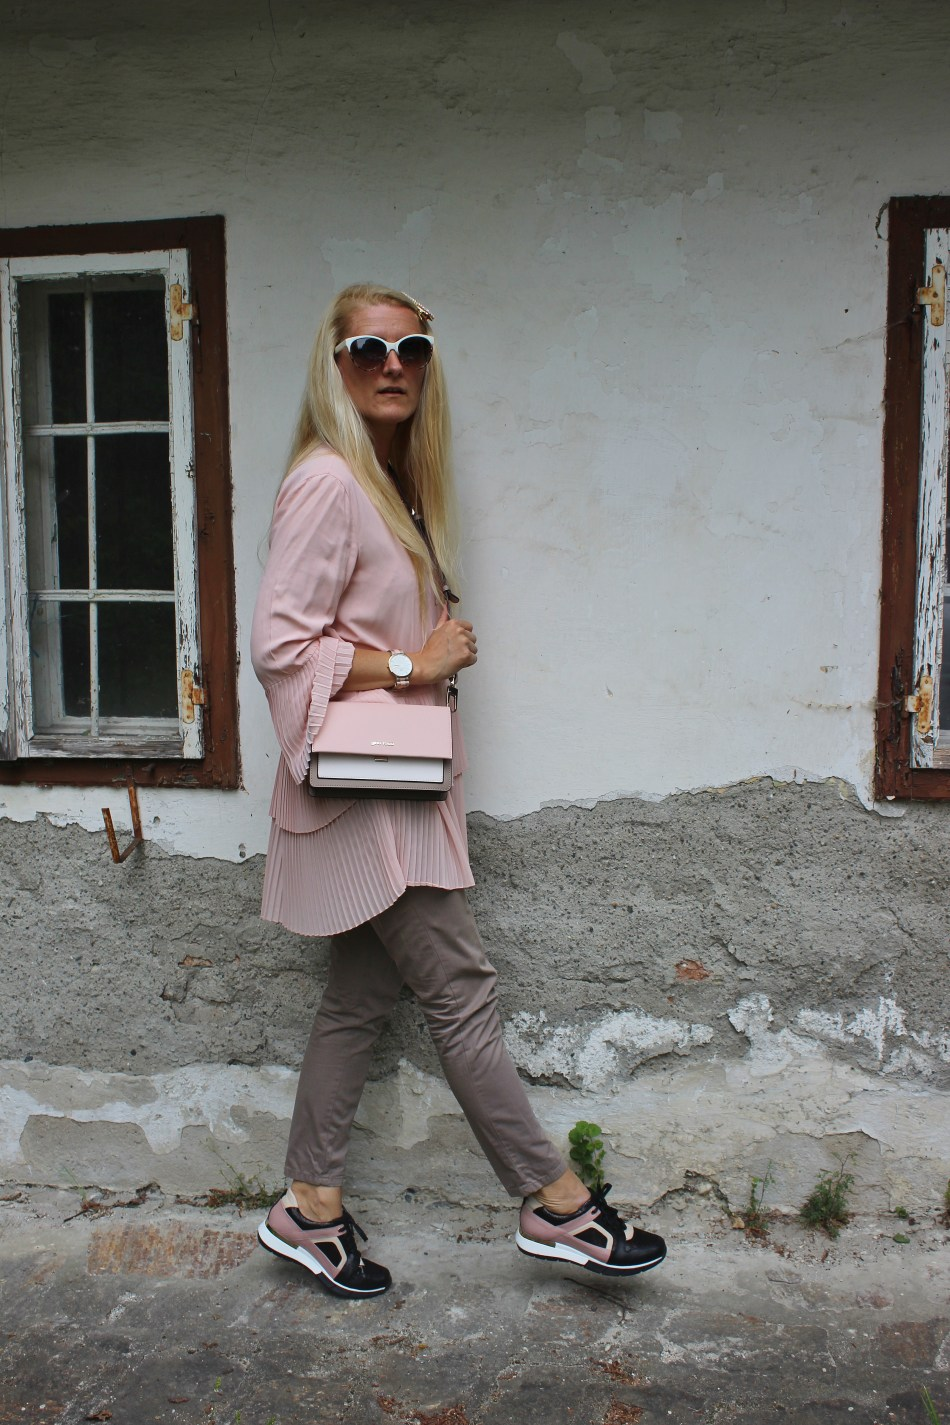 CCC Shoes and Bags- Gino Rossi Sport- Sneakers-Handtasche-bloggerstyle-Blogger-Rosa Longbluse zara- Taupe Hose-carrieslifestyle-Tamara-Prutsch